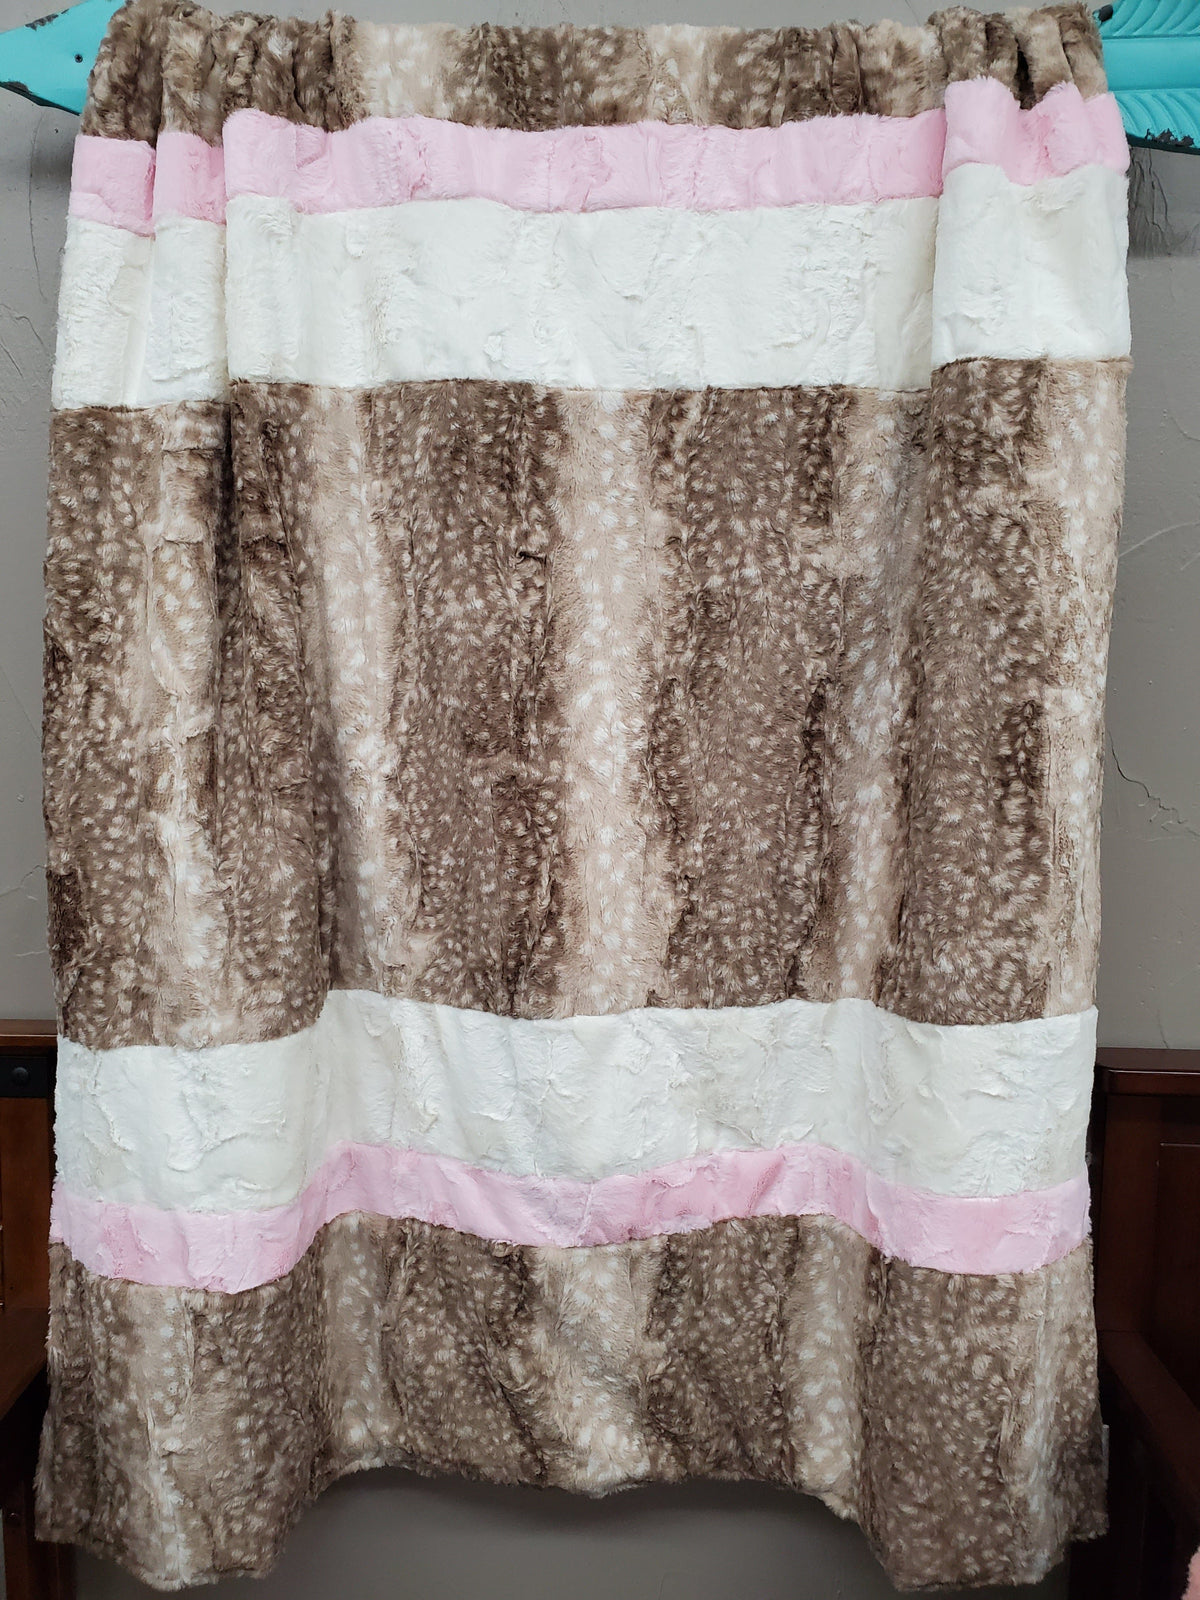 Comfort Blanket - Fawn Minky, Blush Minky and Ivory Hide Minky